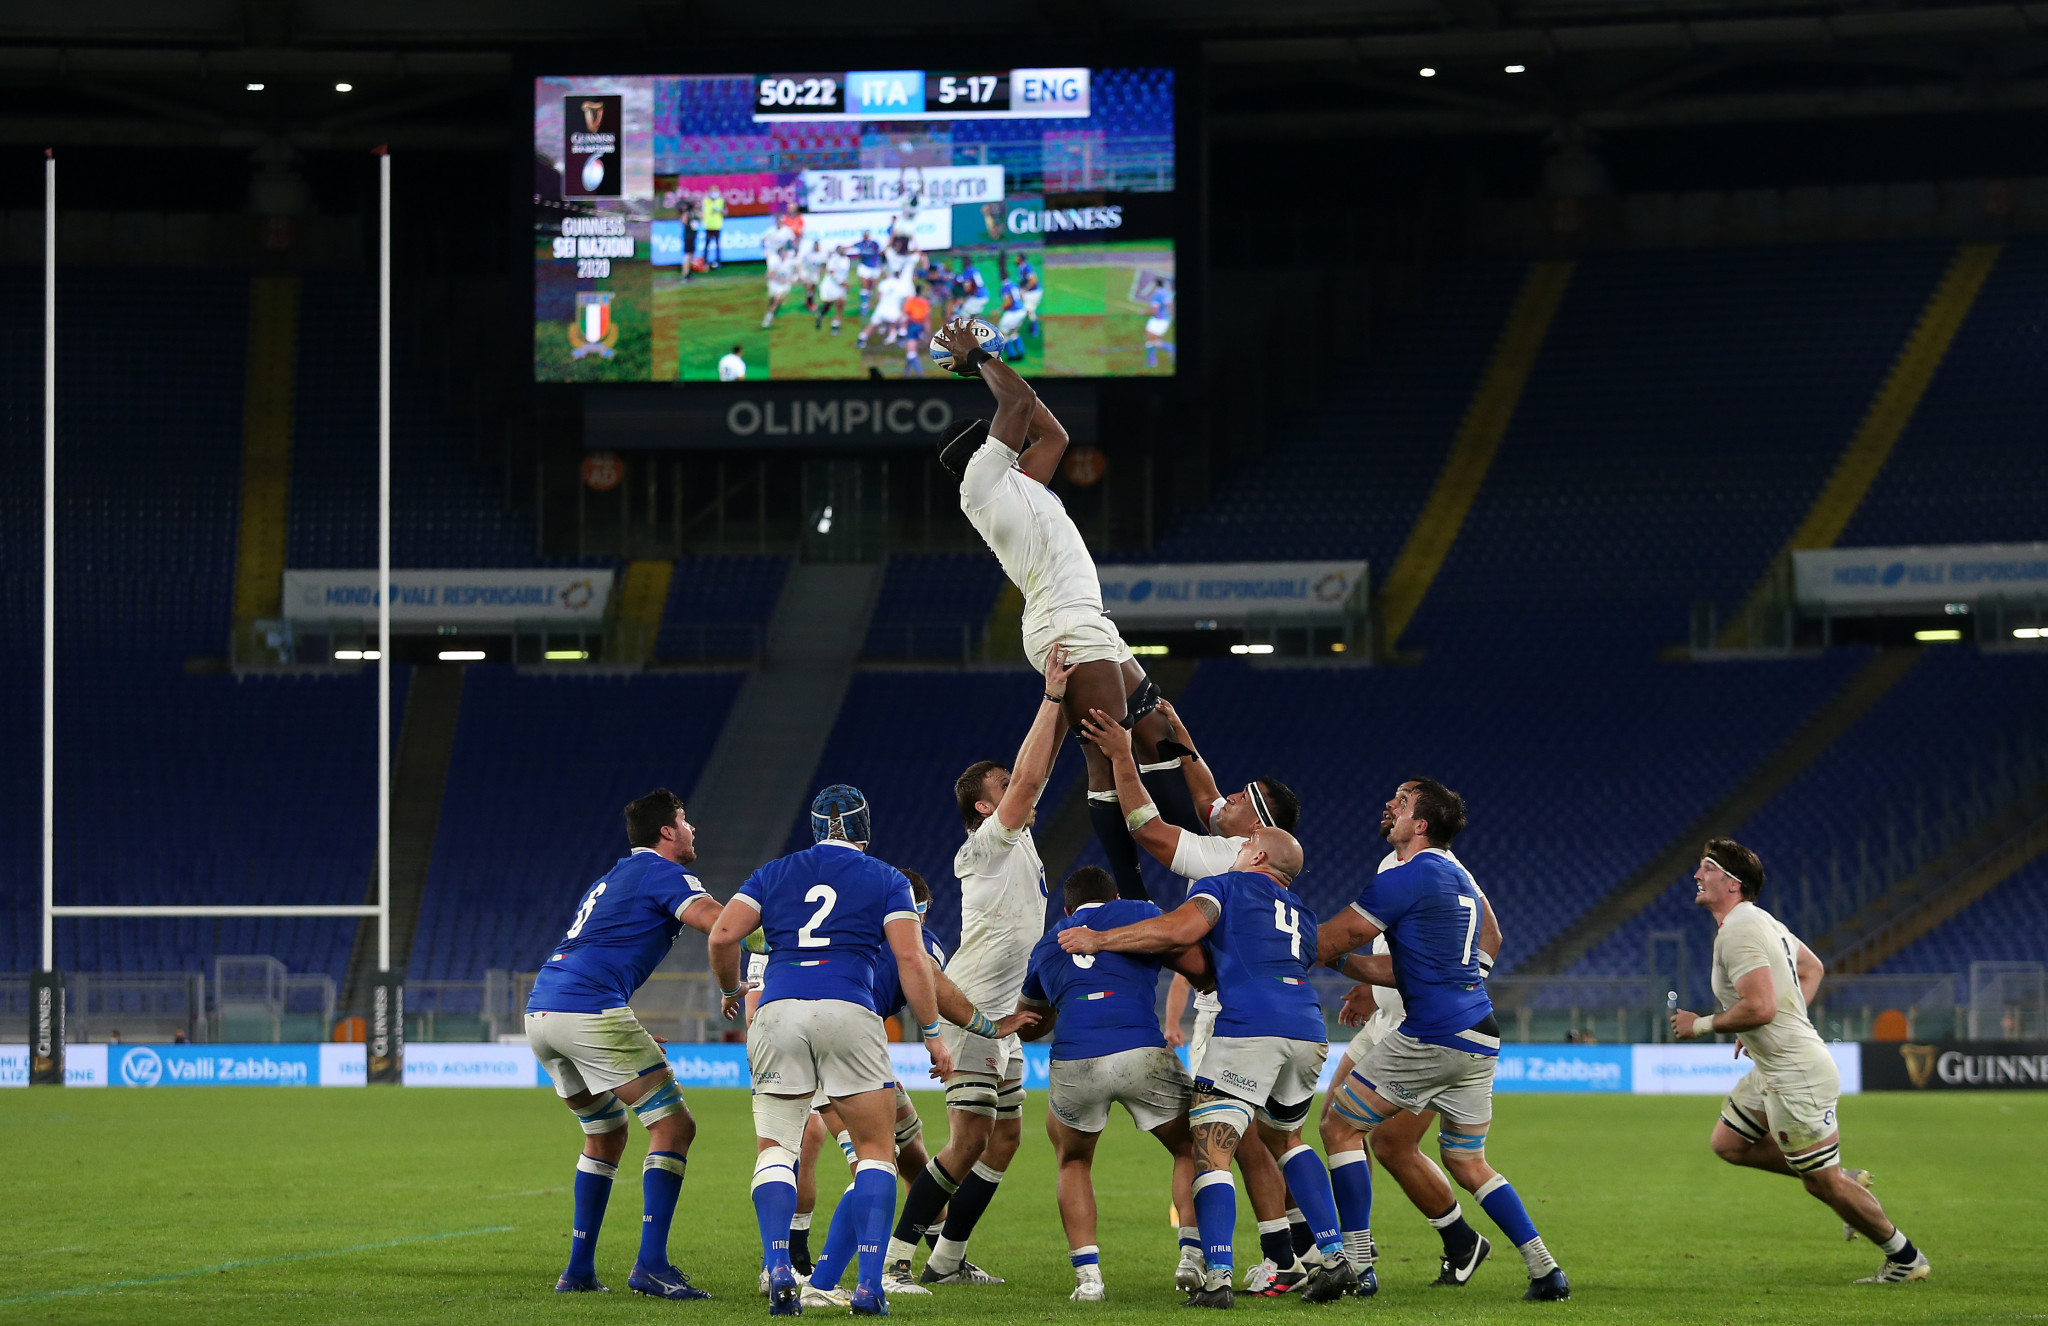 International rugby matches have resumed but are taking place with no spectators ©Getty Images